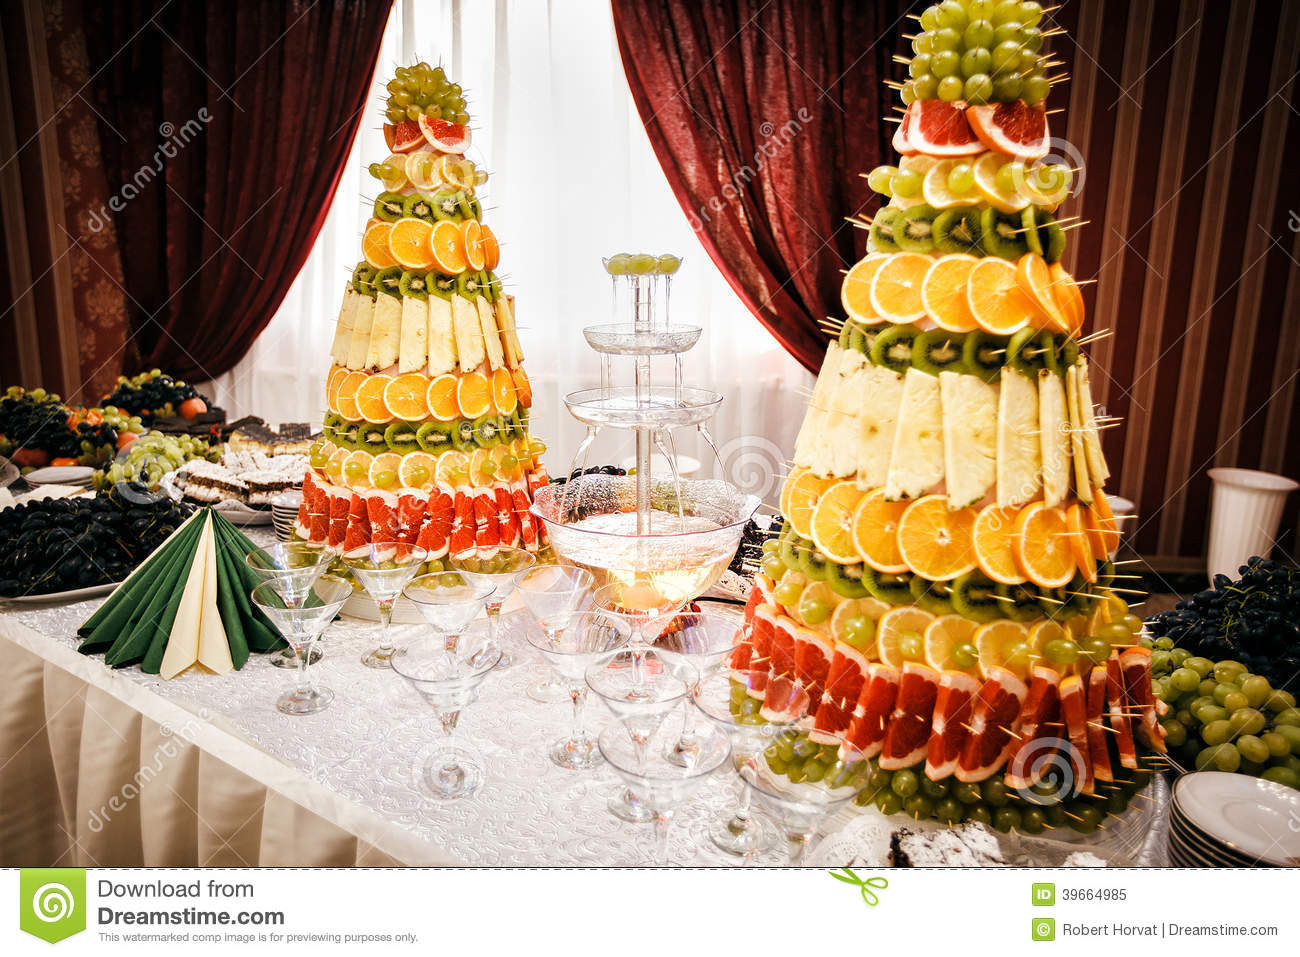 Champagne Fountain And Decorations From Fruit On Table